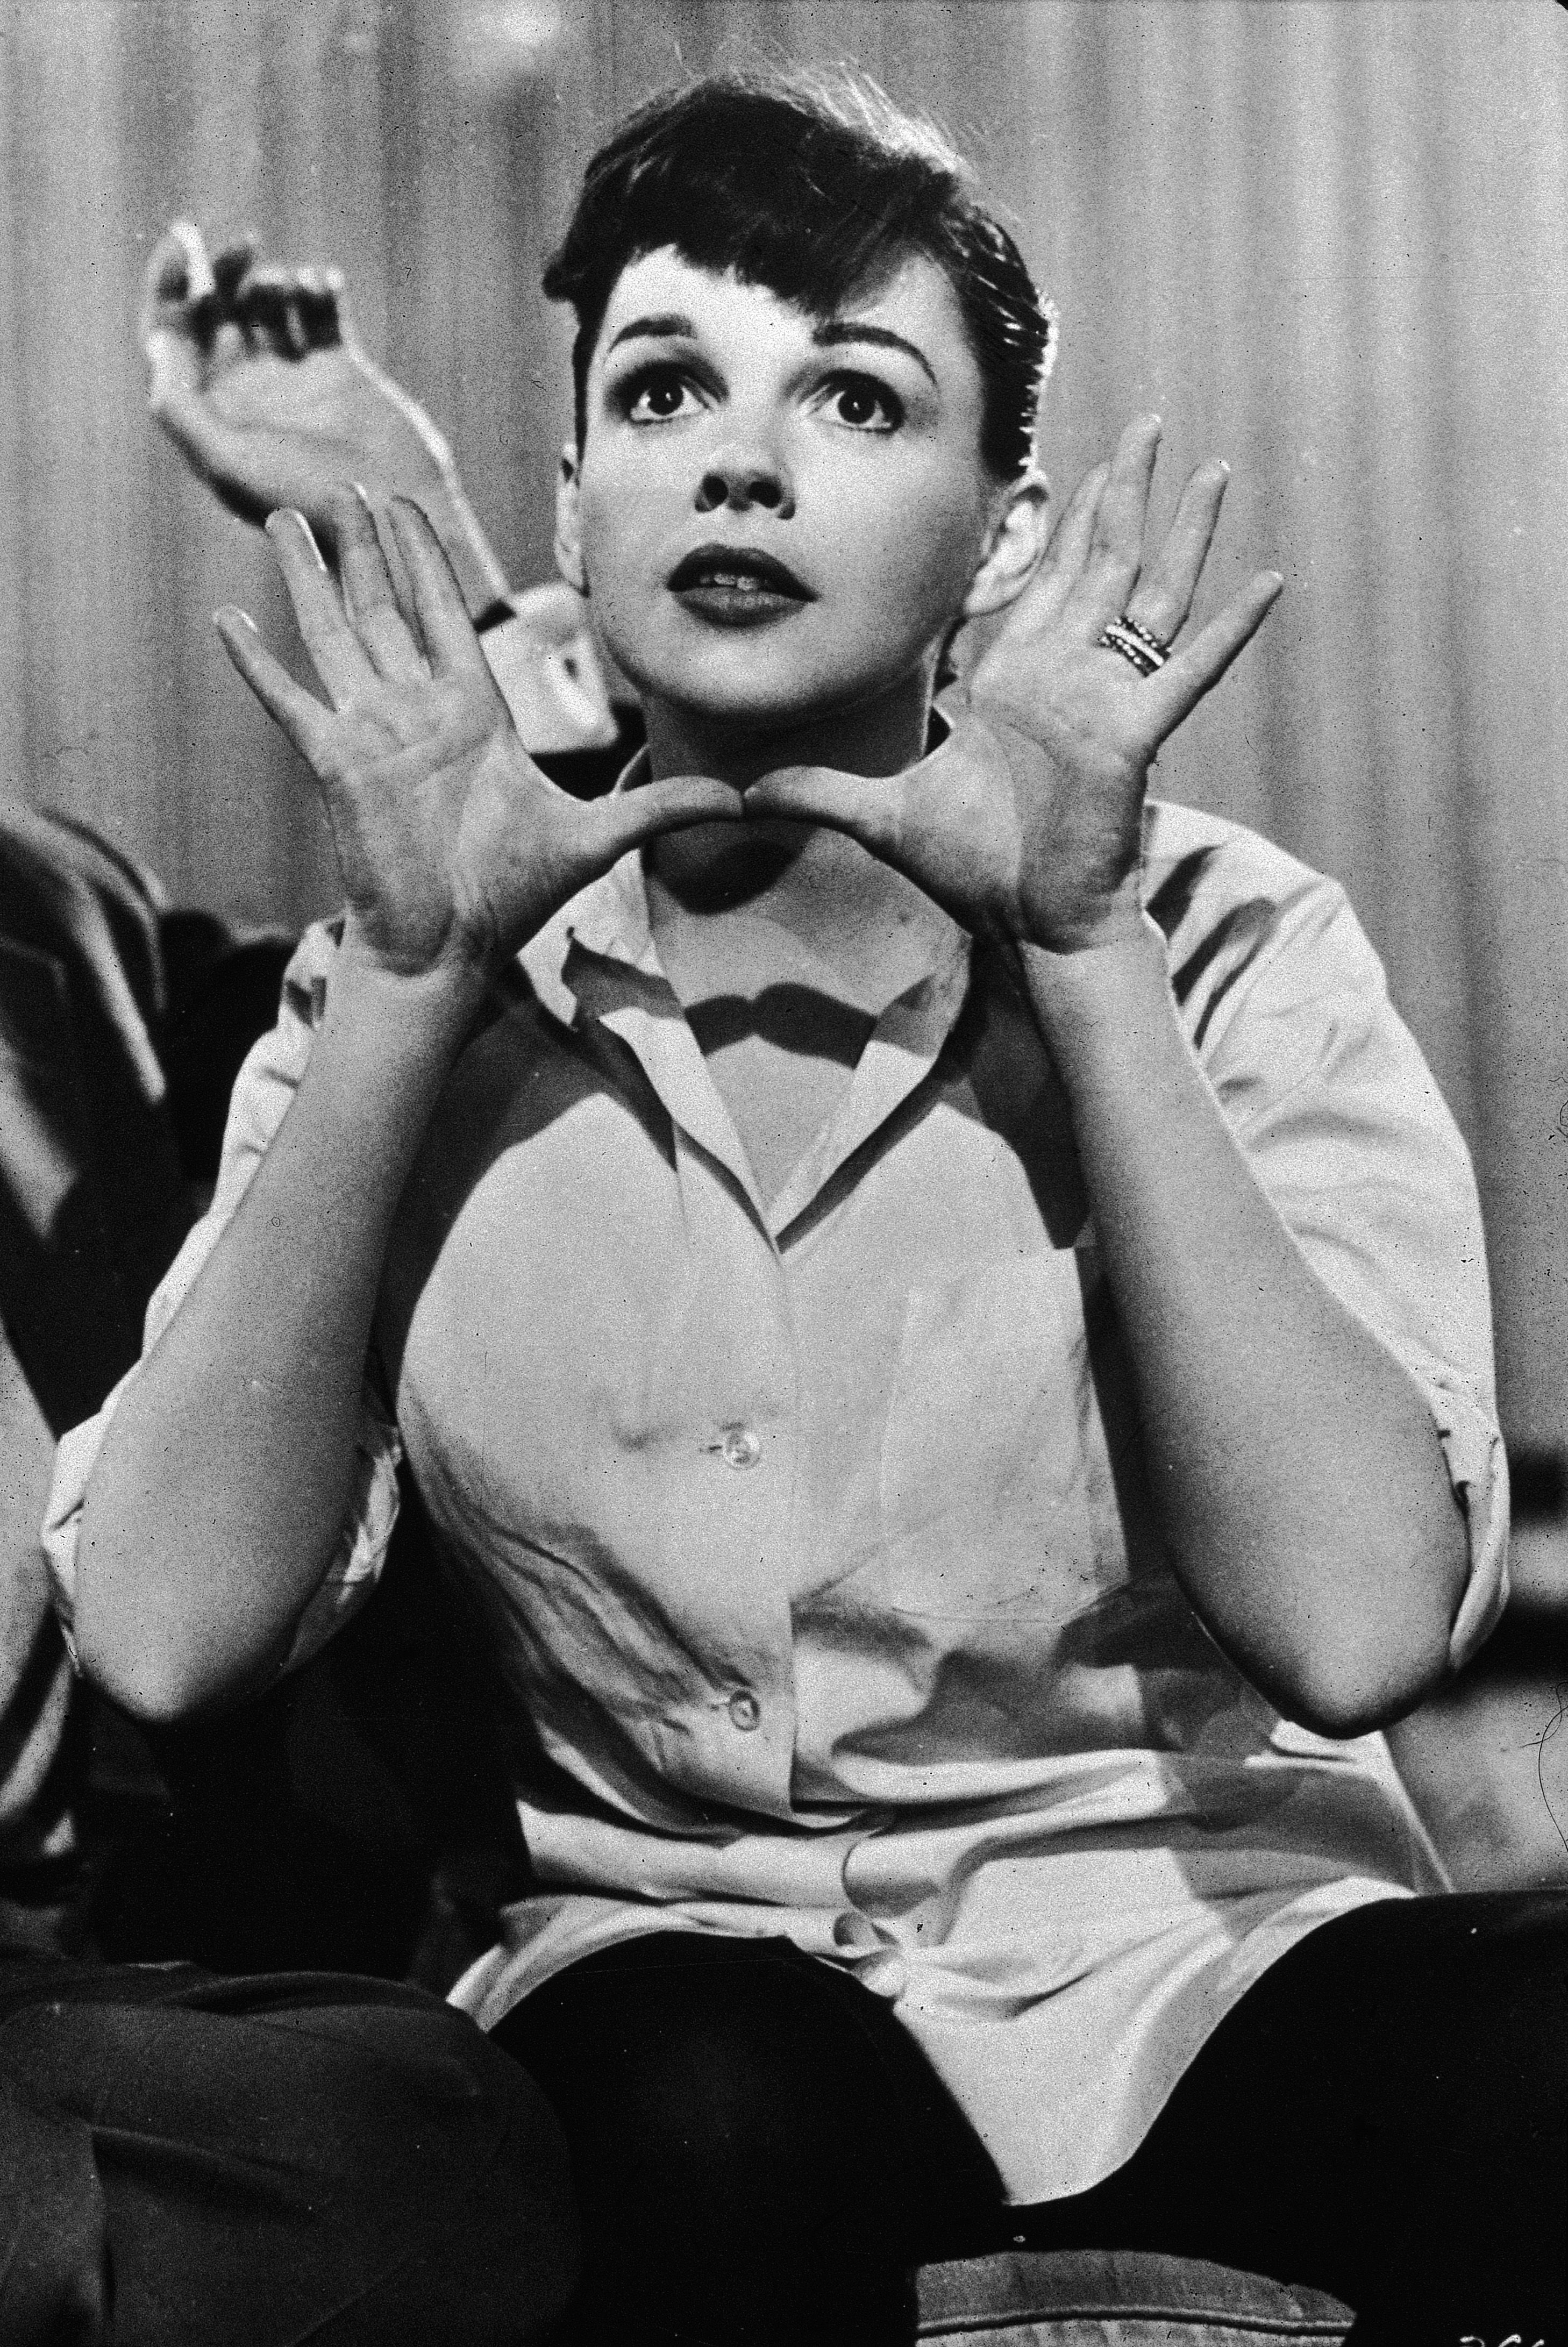 American actress and singer Judy Garland holds her hands up near her face for a portrait on January 01, 1950 | Photo: Getty Images